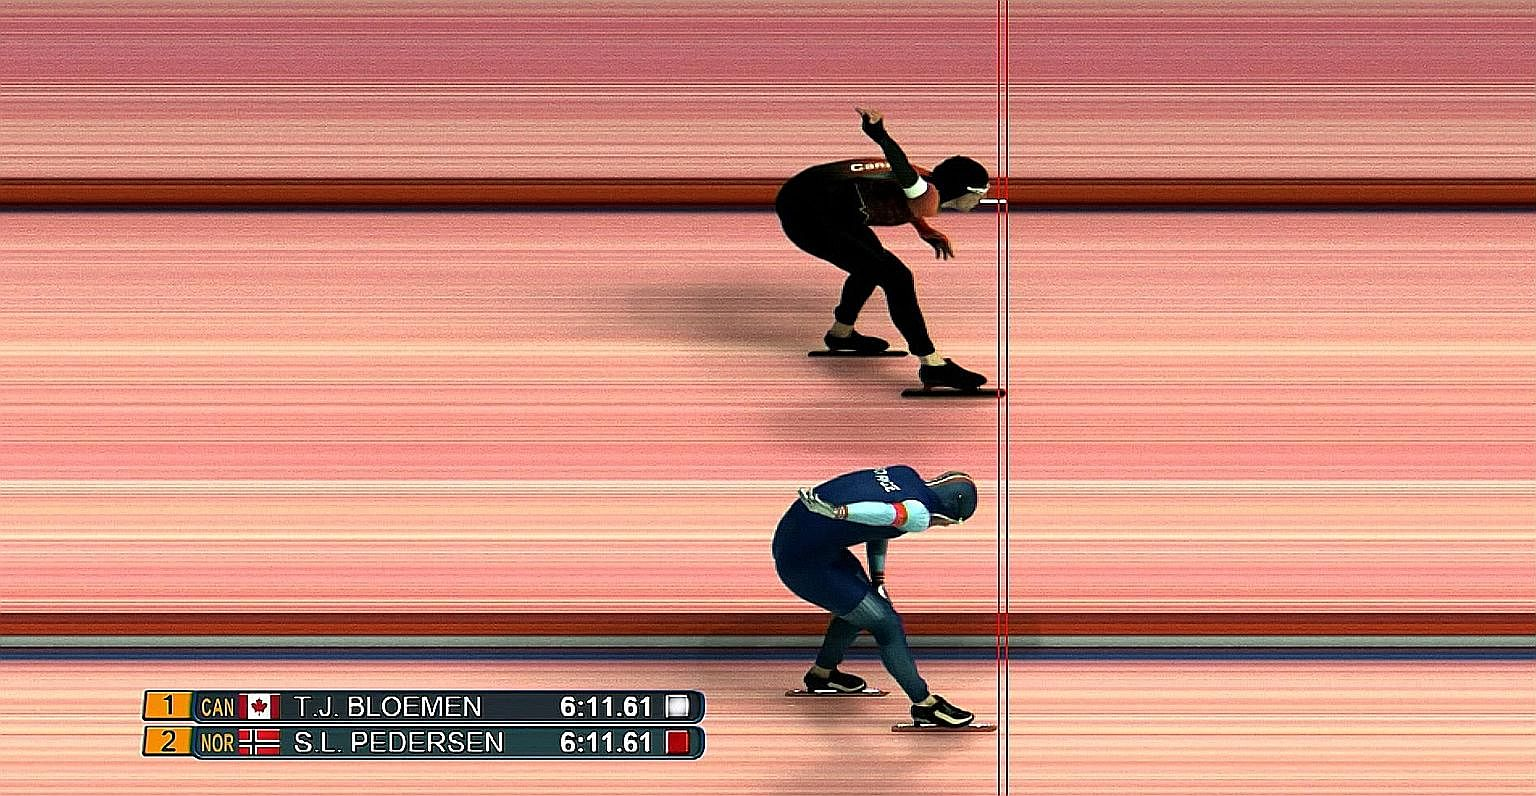 A screen grab of a television replay showing the blade of Canada's Ted-Jan Bloemen crossing the line two-thousandths of a second ahead of Norway's Sverre Lunde Pedersen.